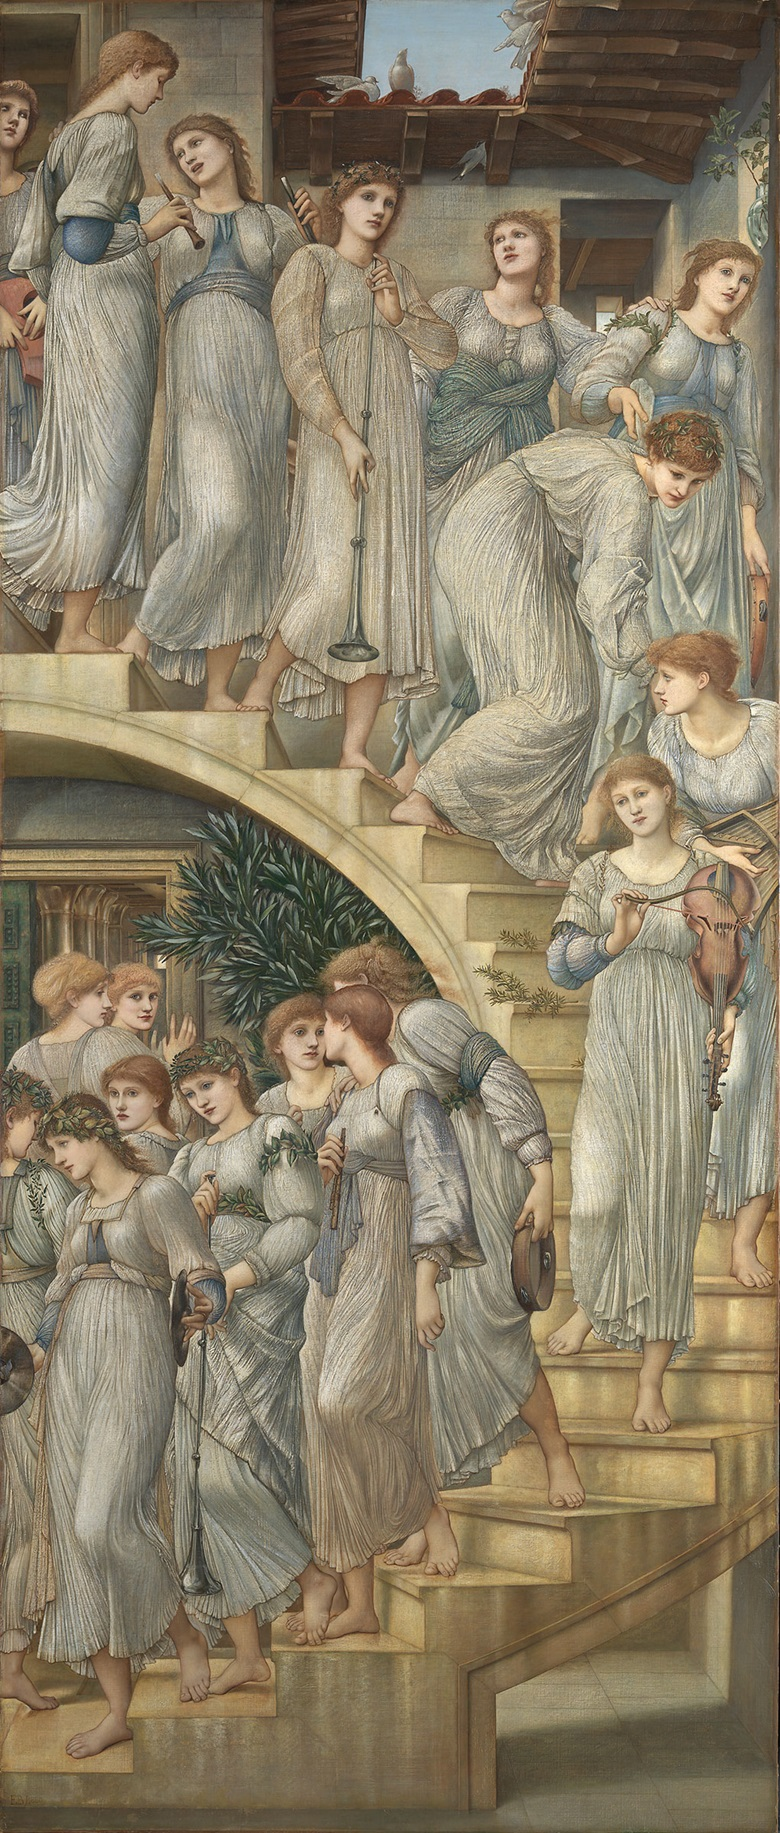 Sir Edward Coley Burne-Jones, Bt., A.R.A., R.W.S. (1833-1898), The Golden Stairs, 1880. © Tate, London, 2016